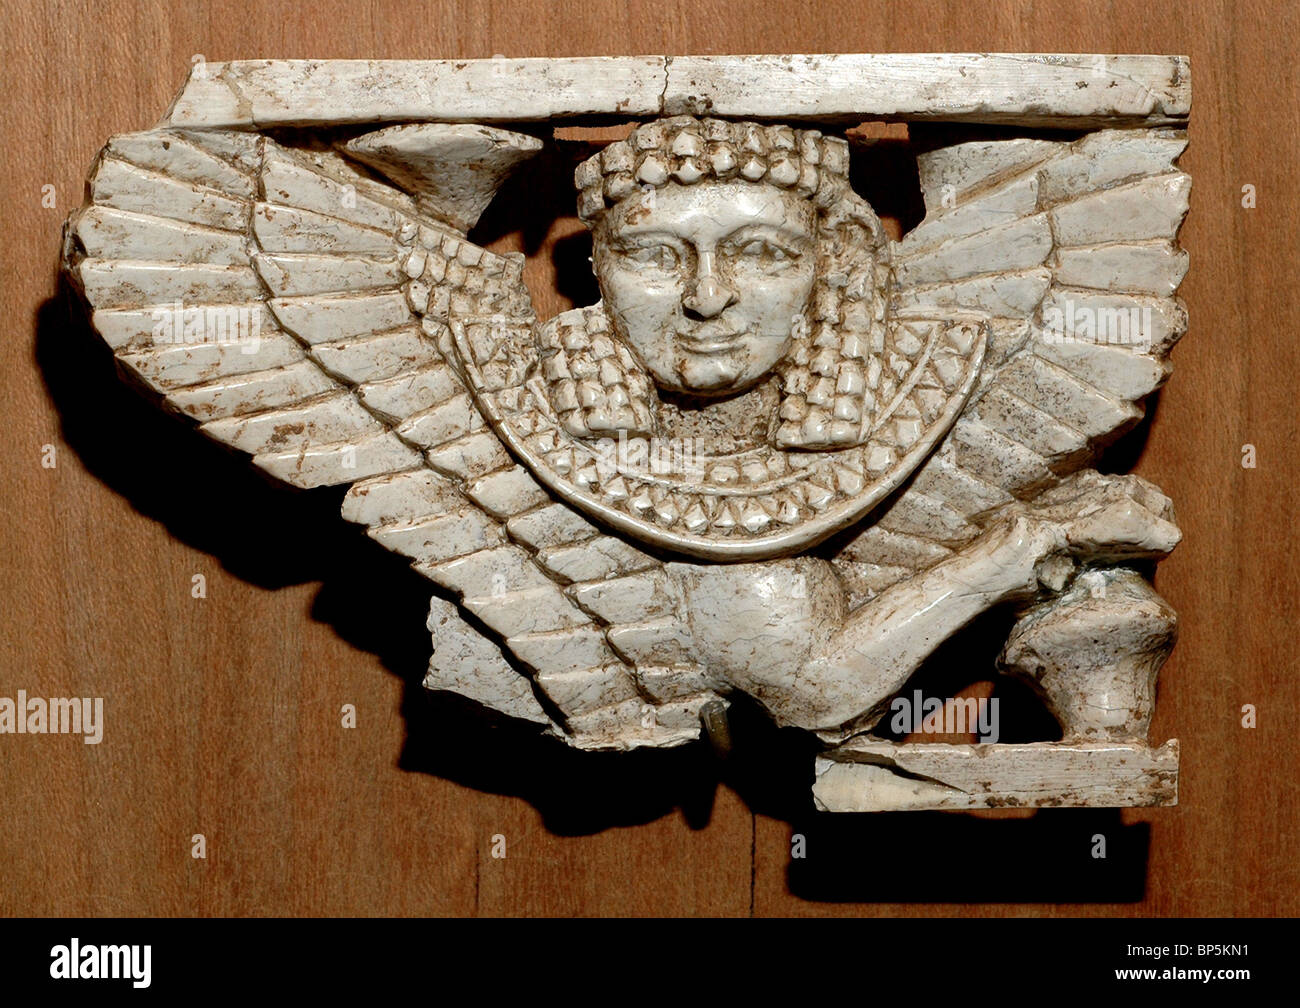 Ivory plate depicting a sphinx a winged creature with the body of a lion & a human head. Phoenician carving - Stock Image